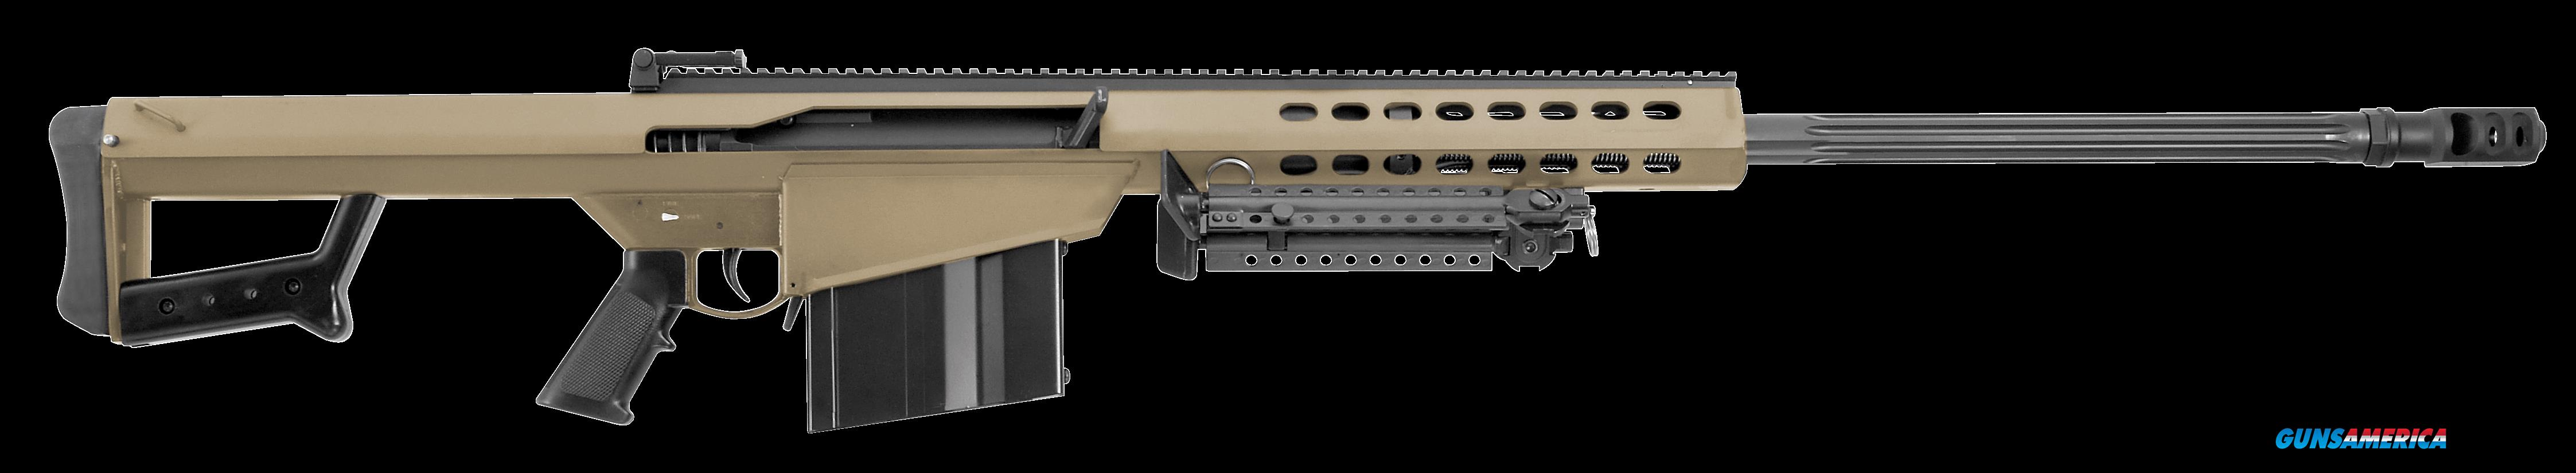 "Barrett 14029 M82 A1 Semi-Automatic 416 Barrett 29"" 10+1 Fixed Flat Dark Earth Stk FDE/Blk  Guns > Rifles > B Misc Rifles"